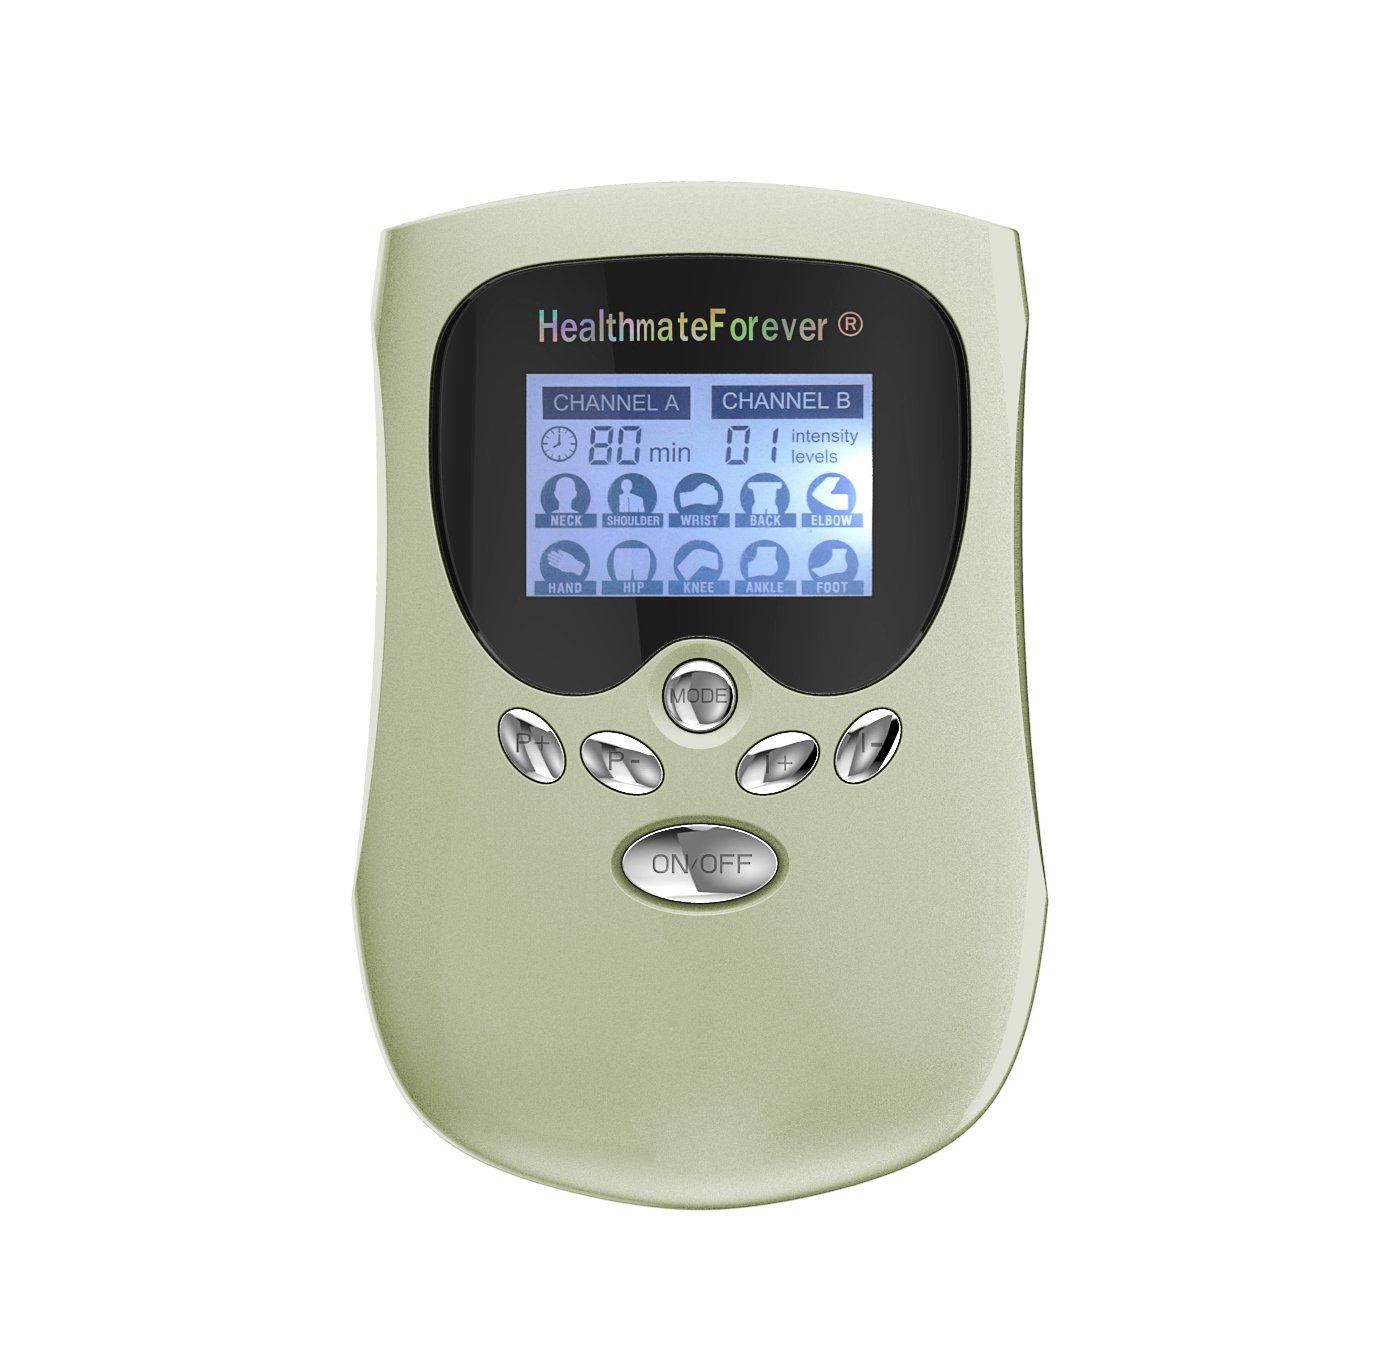 PM10AB HealthmateForever TENS Unit Electrical Muscle Stimulator Green + 5 Pairs of Pads